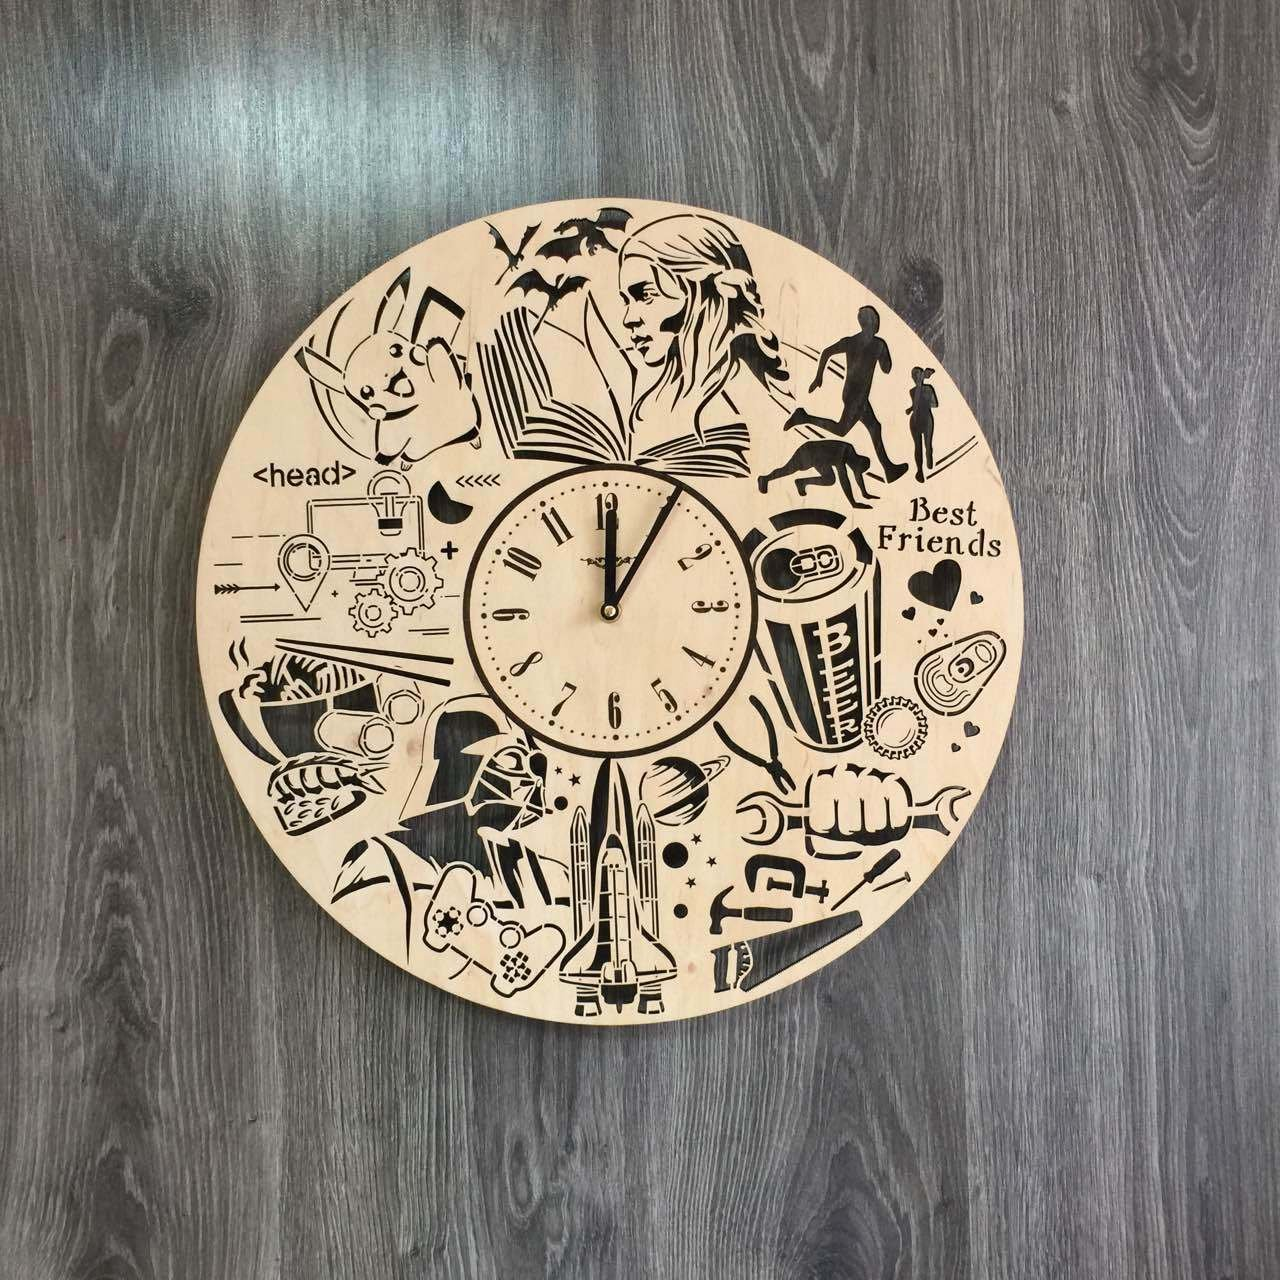 Everyday Activities Wall Clock Made of WOOD - Perfect and Beautifully Cut - Decorate your Home with MODERN ART - UNIQUE GIFT for Him and Her - Size 17.7 Inches